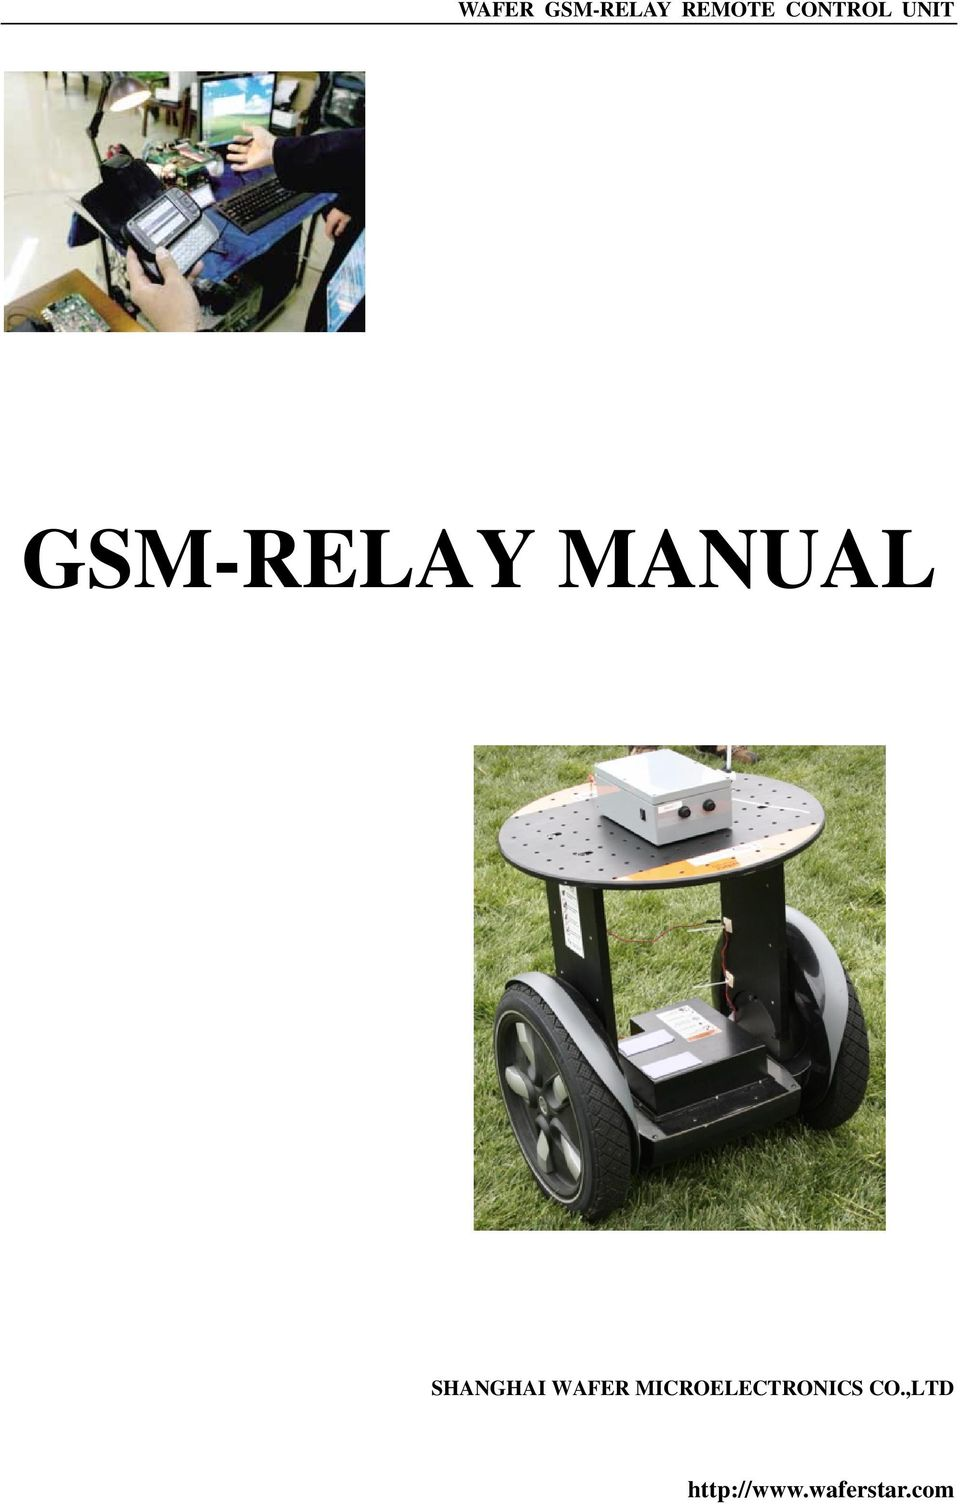 WAFER GSM-RELAY REMOTE CONTROL UNIT GSM-RELAY MANUAL